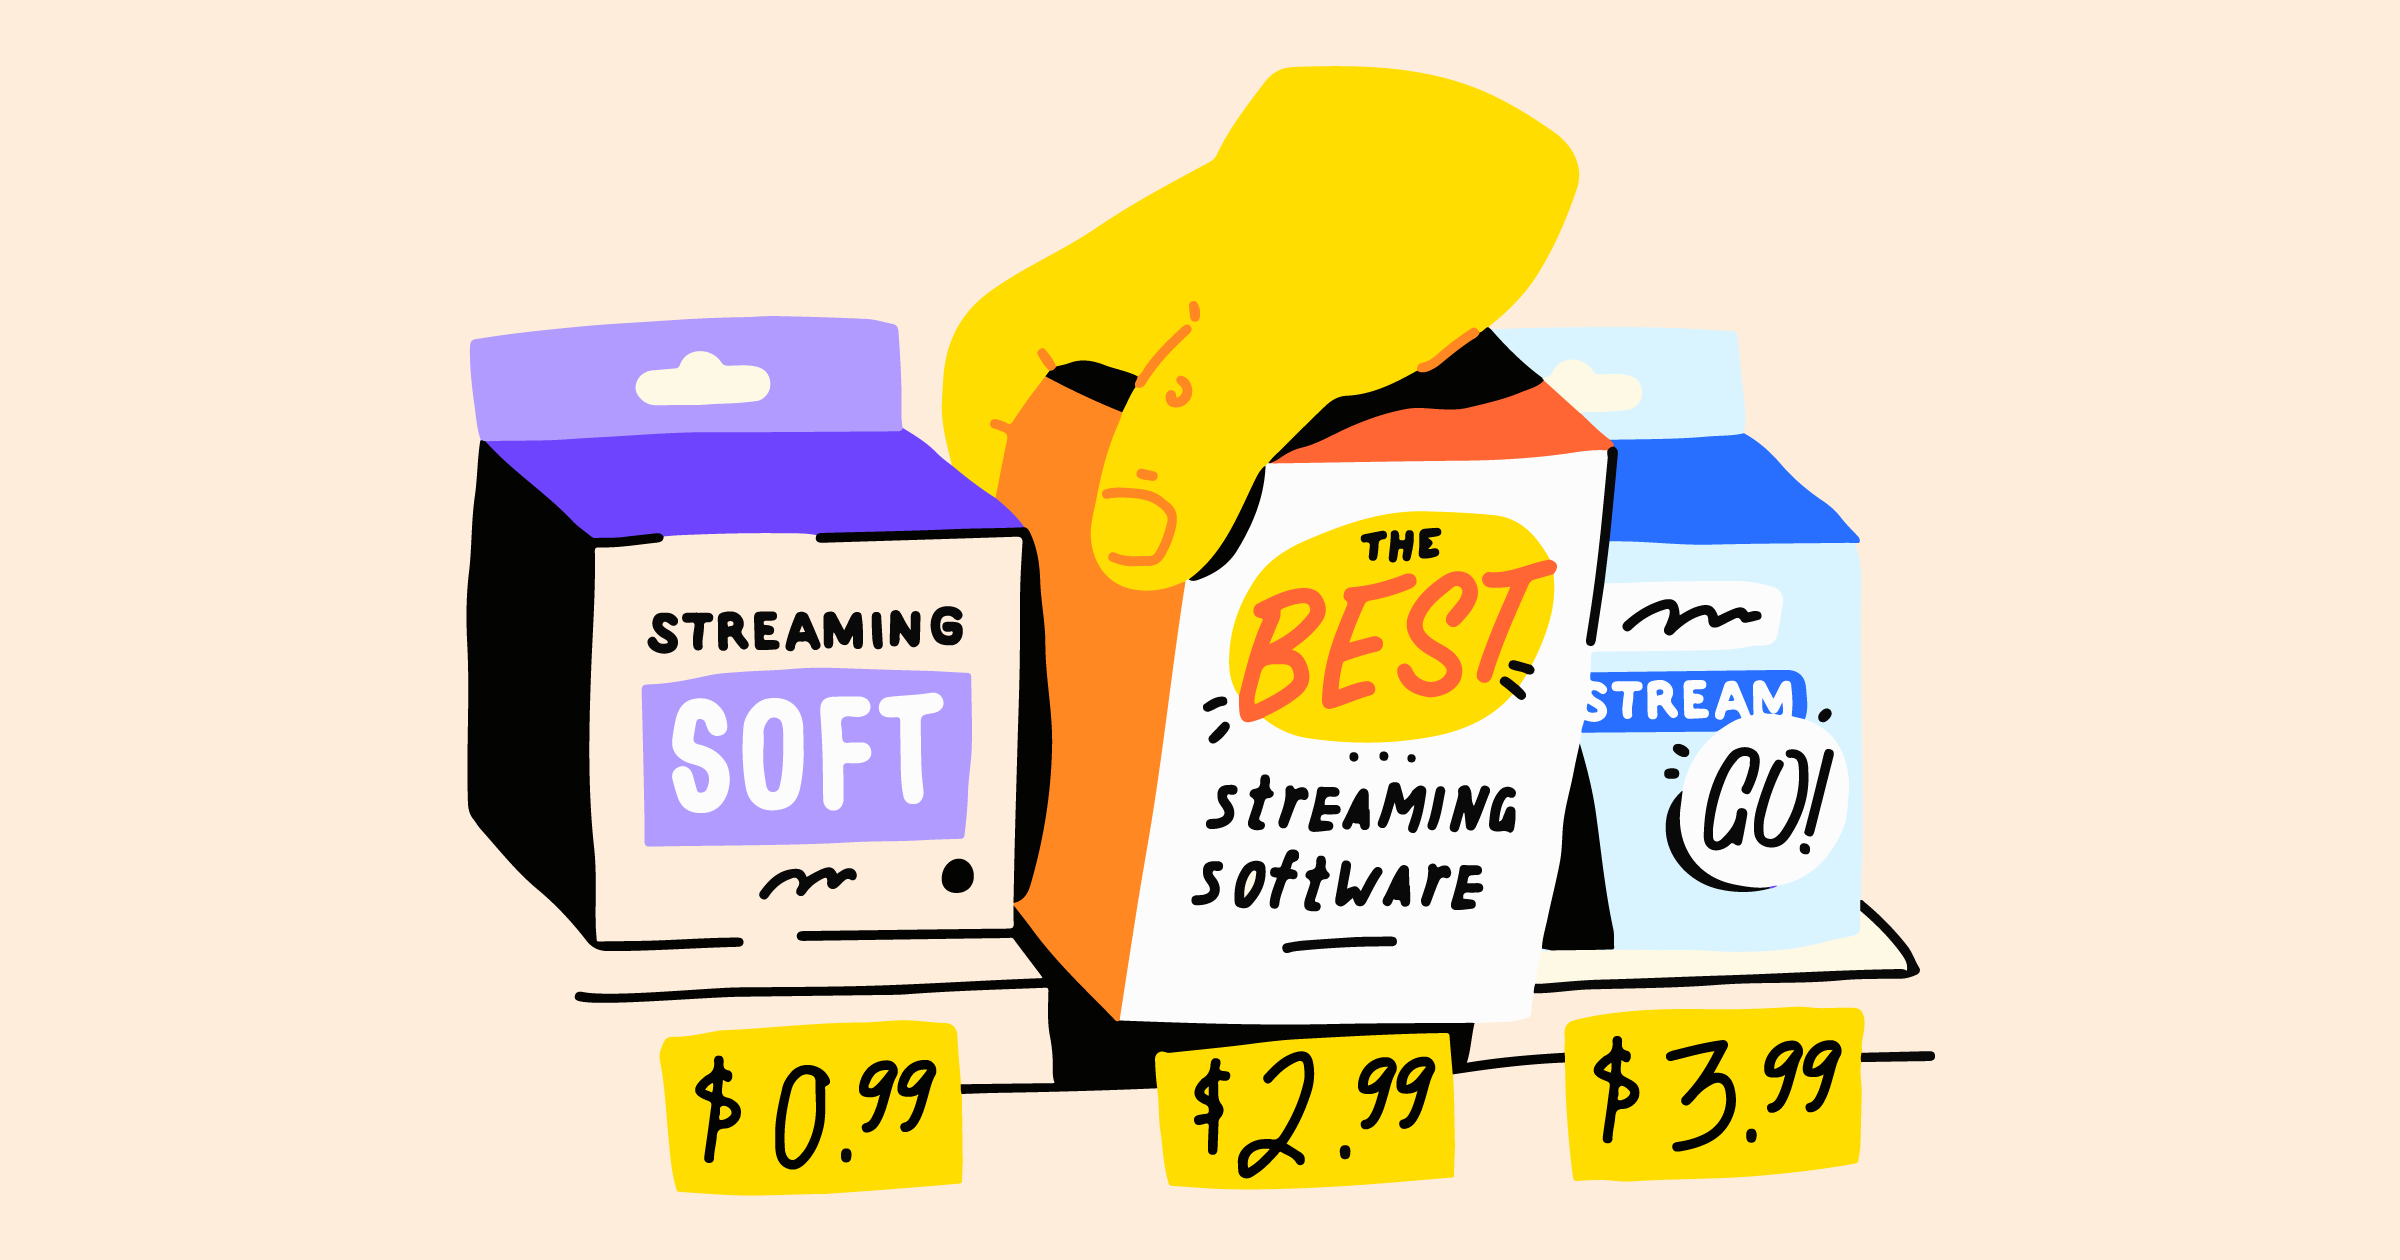 How to choose the best streaming software